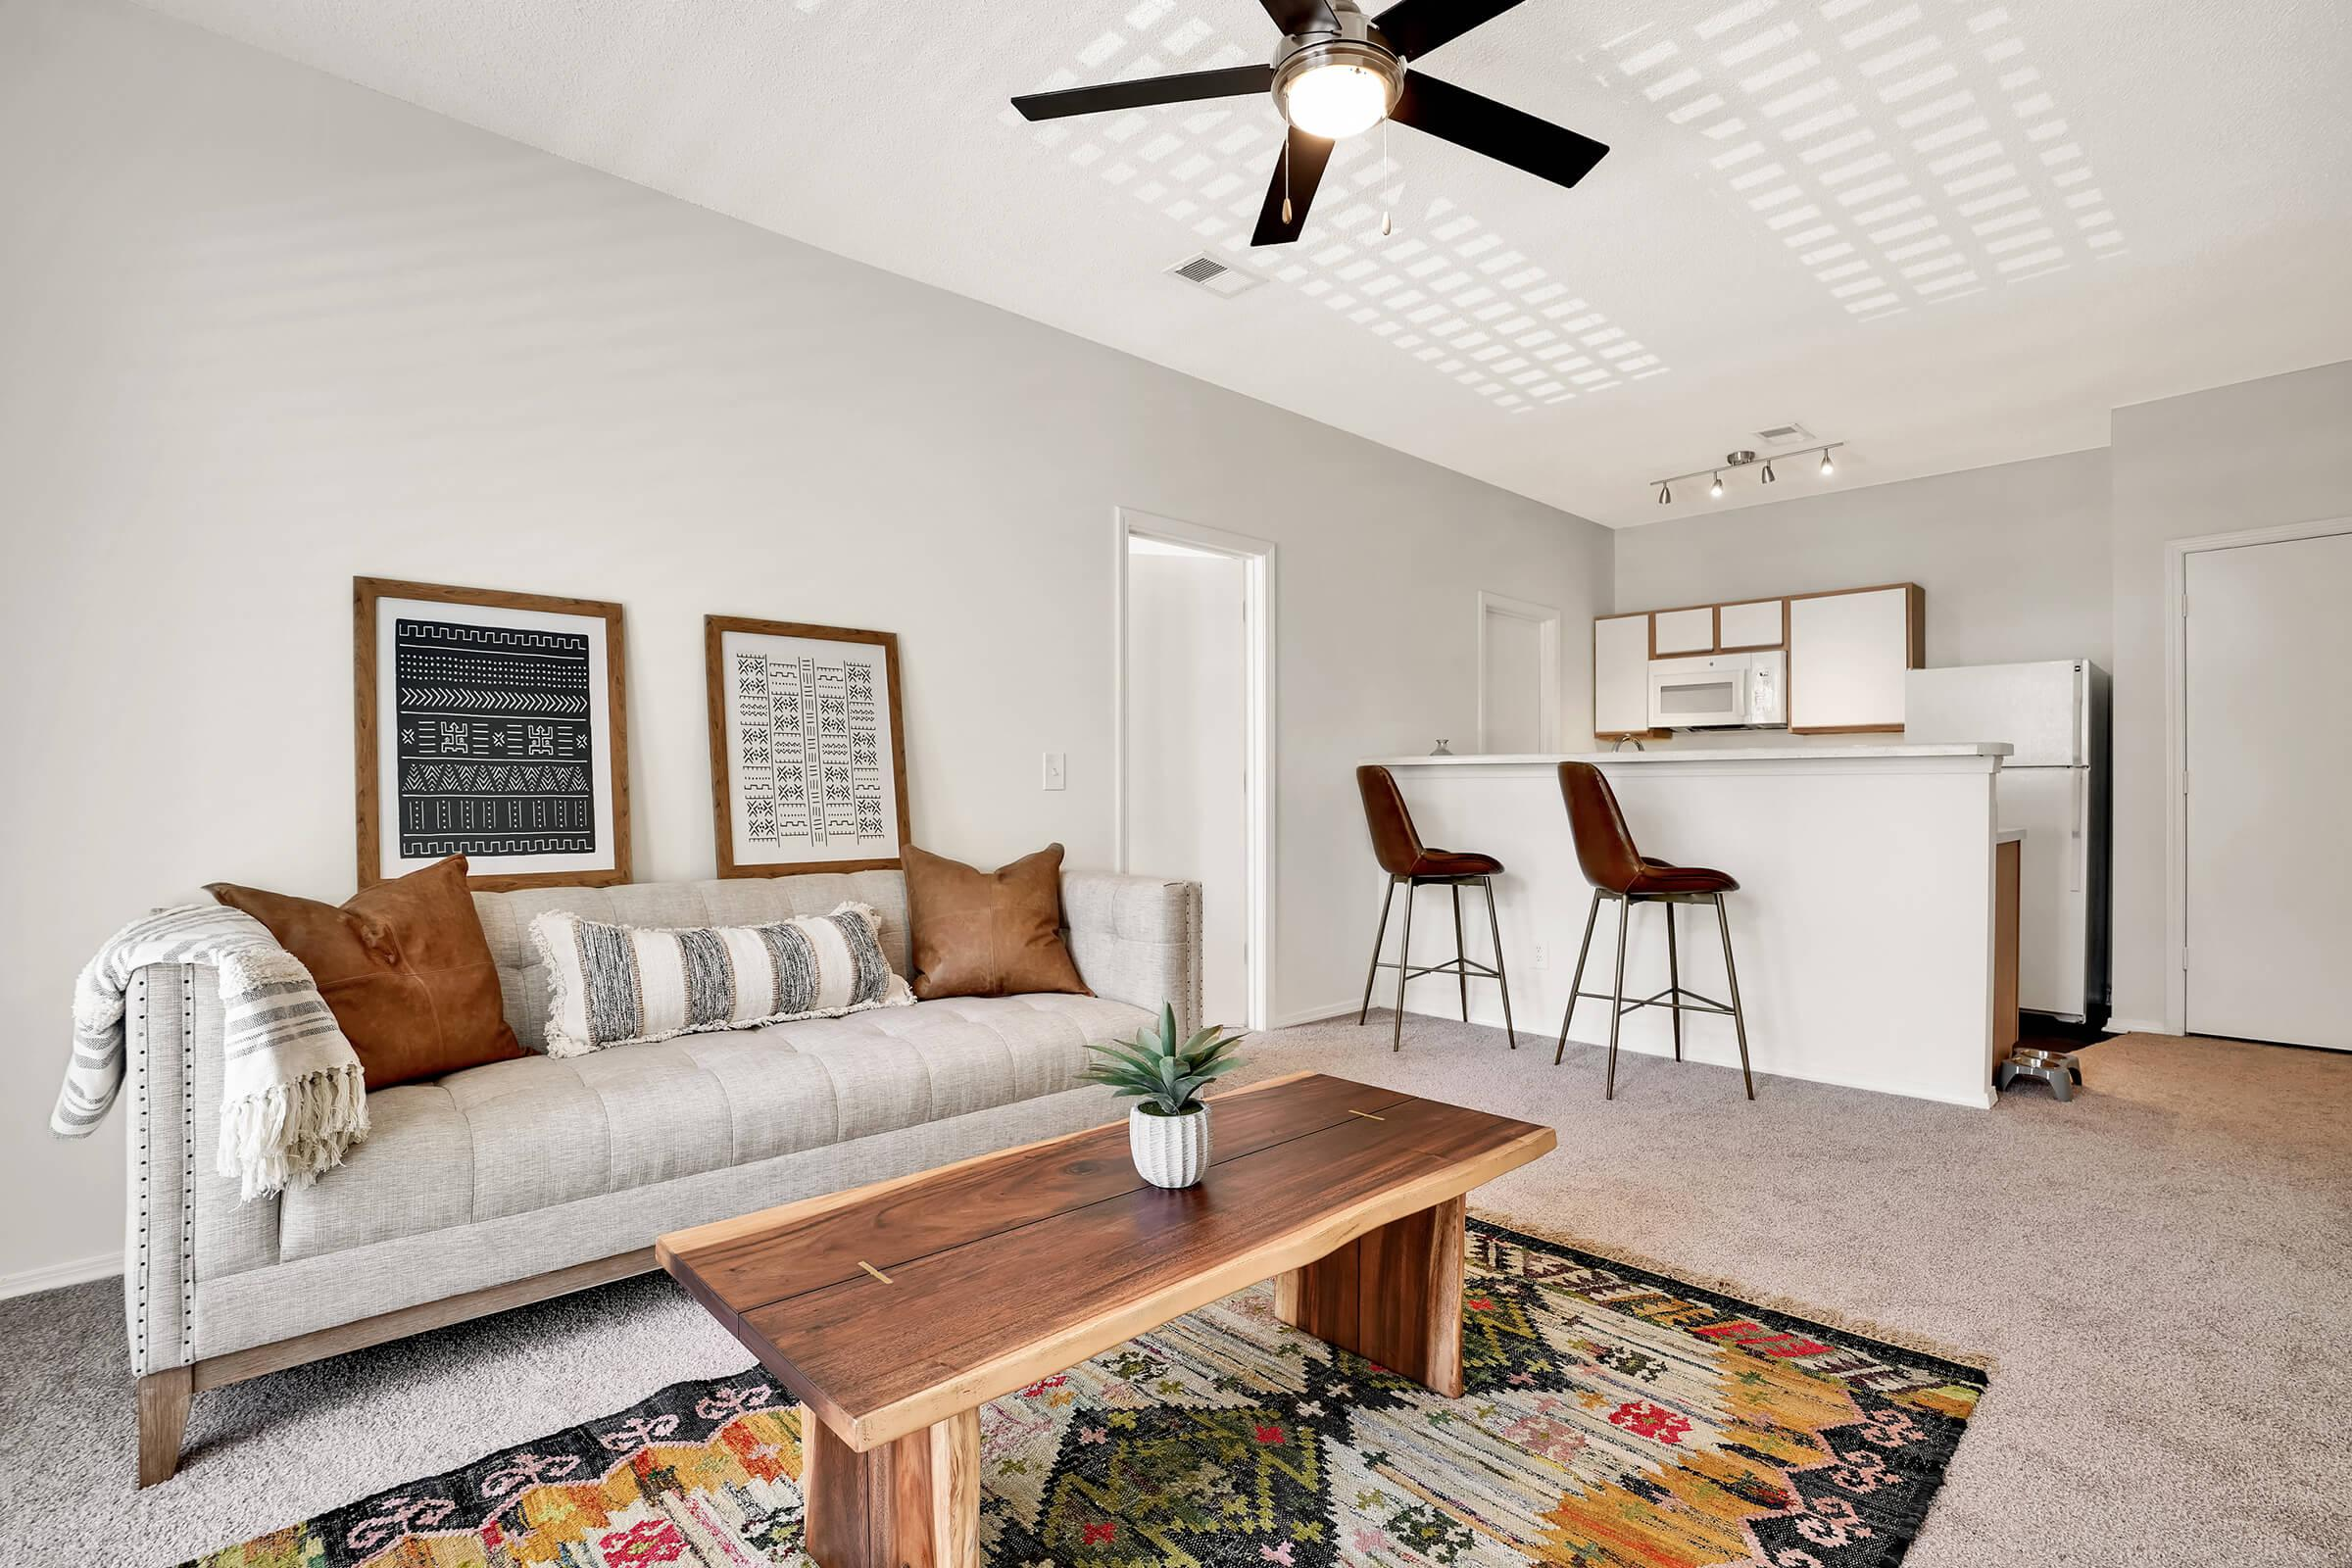 a living room filled with furniture and a rug